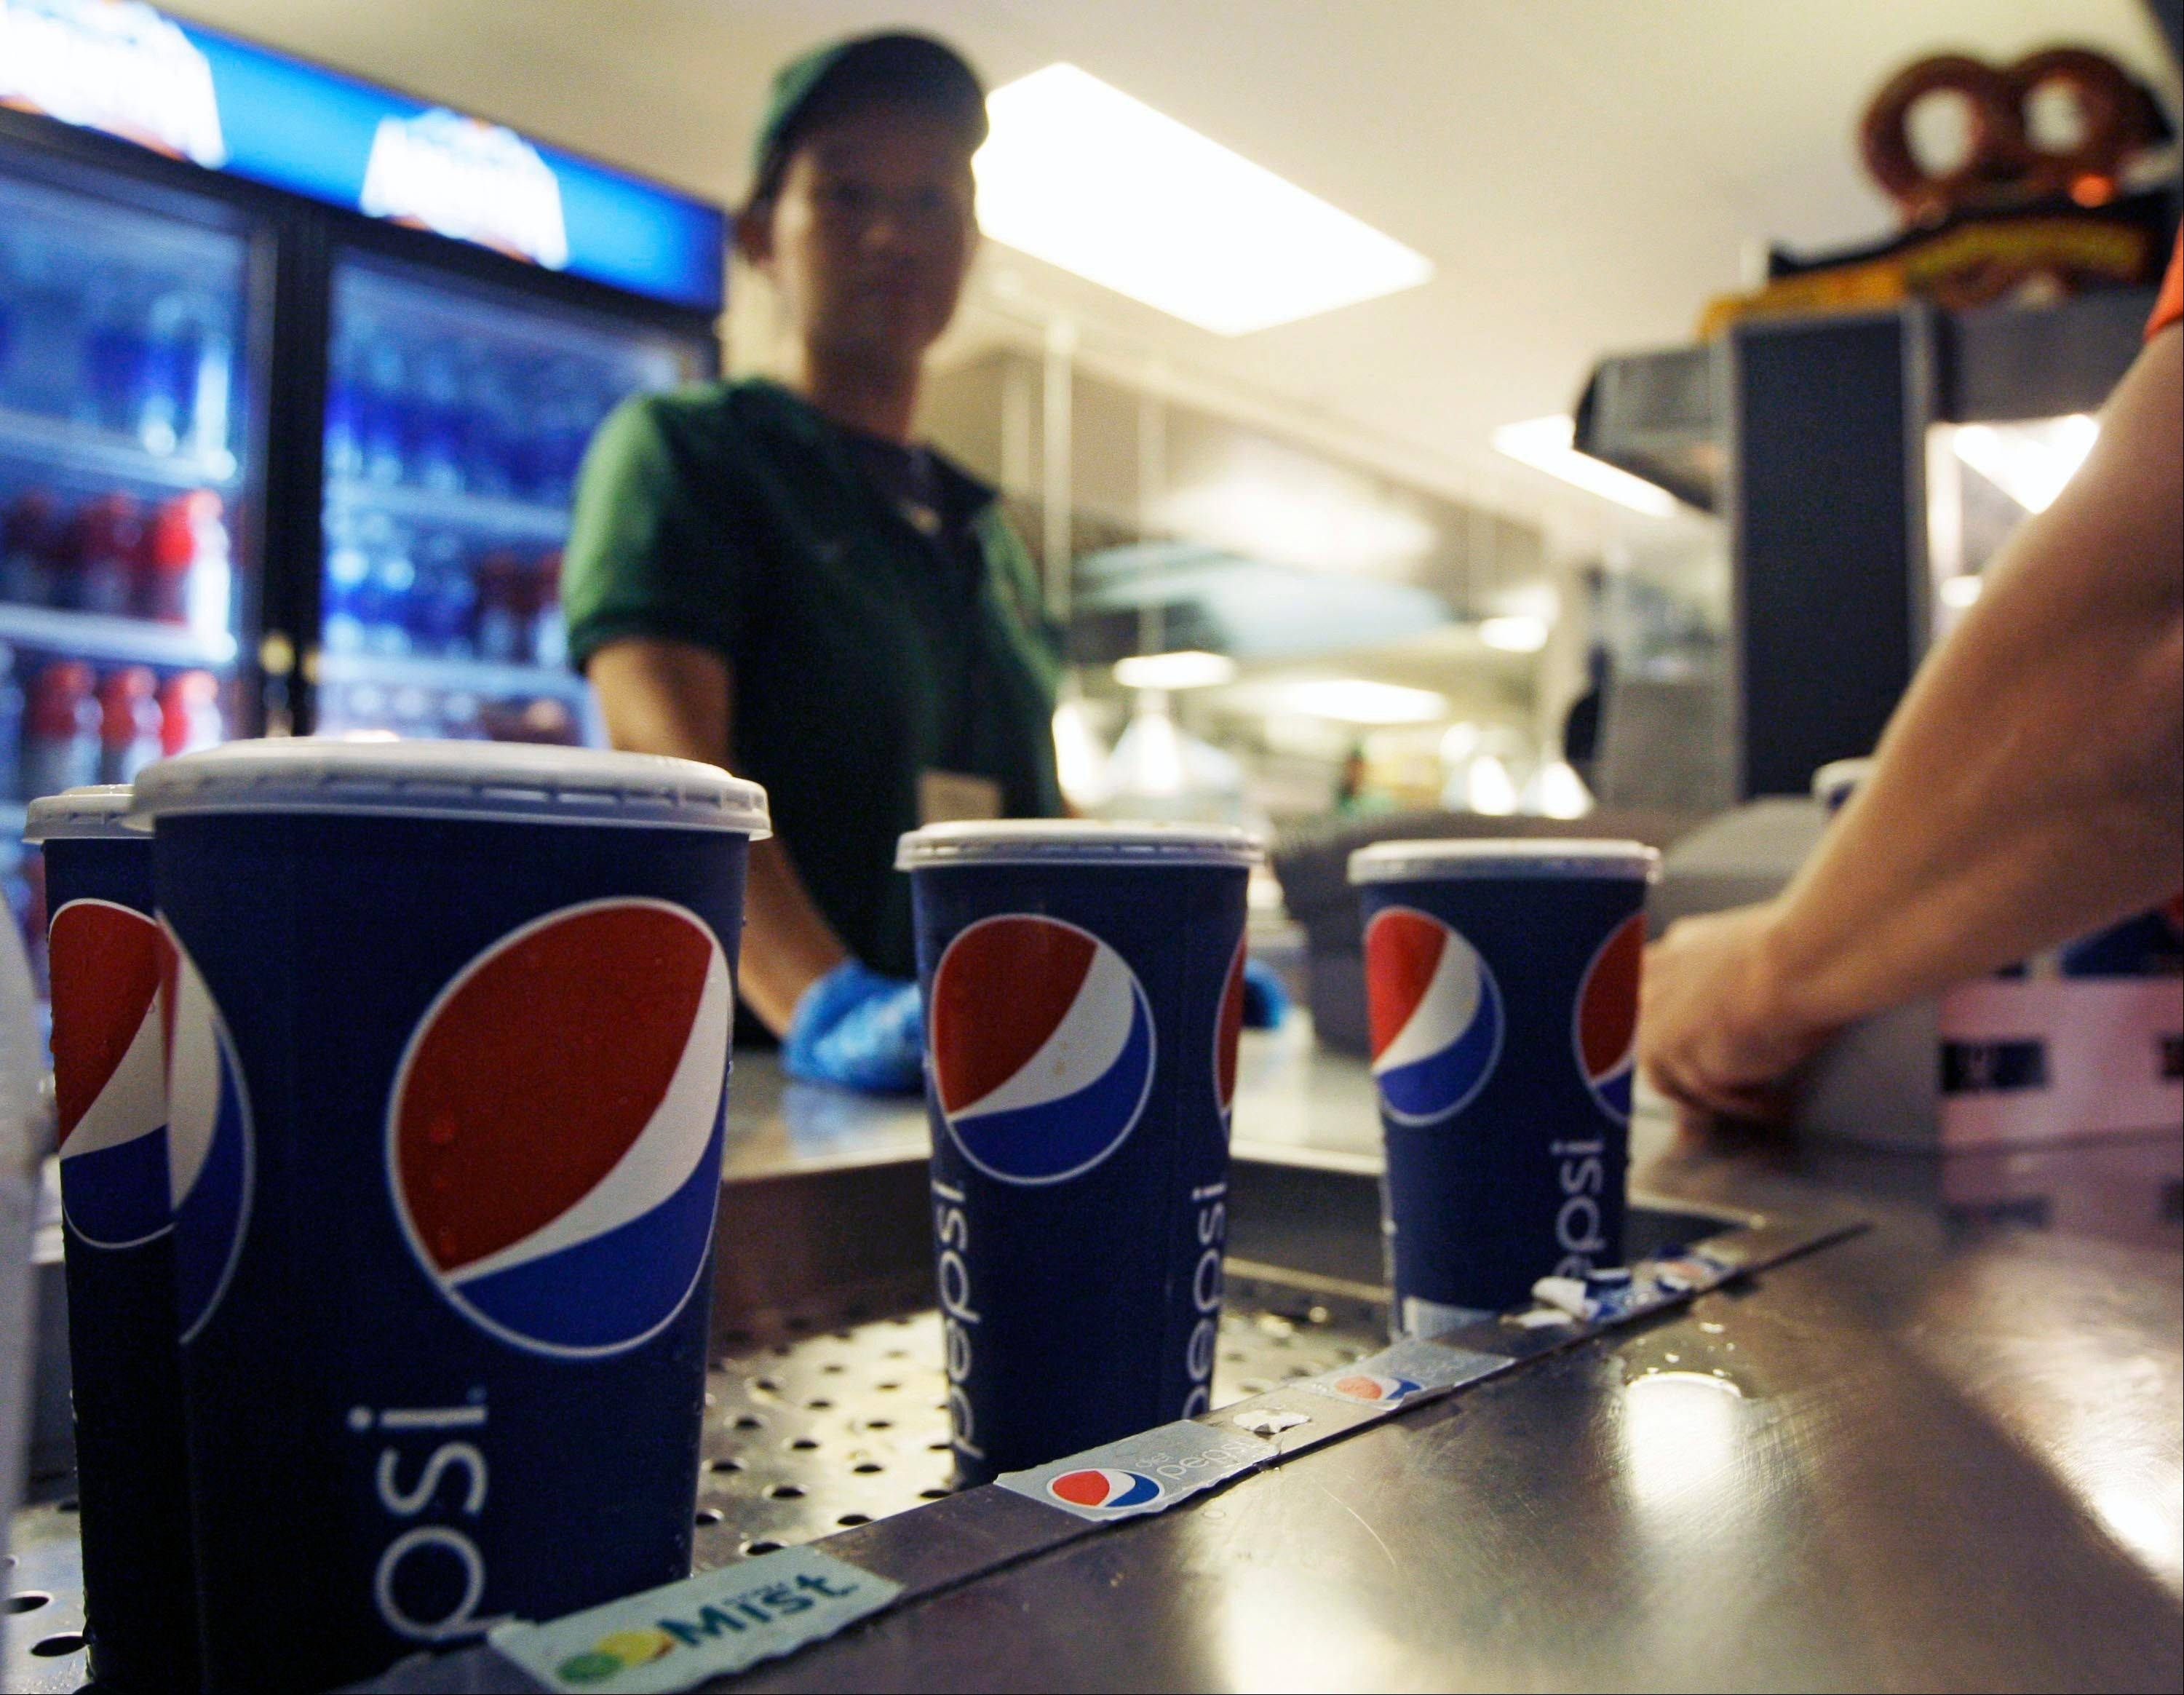 Soft drinks are on display Wednesday during a baseball game between the New York Mets and the Washington Nationals. Health officials approved an unprecedented 16-ounce limit on sodas and other sugary drinks.